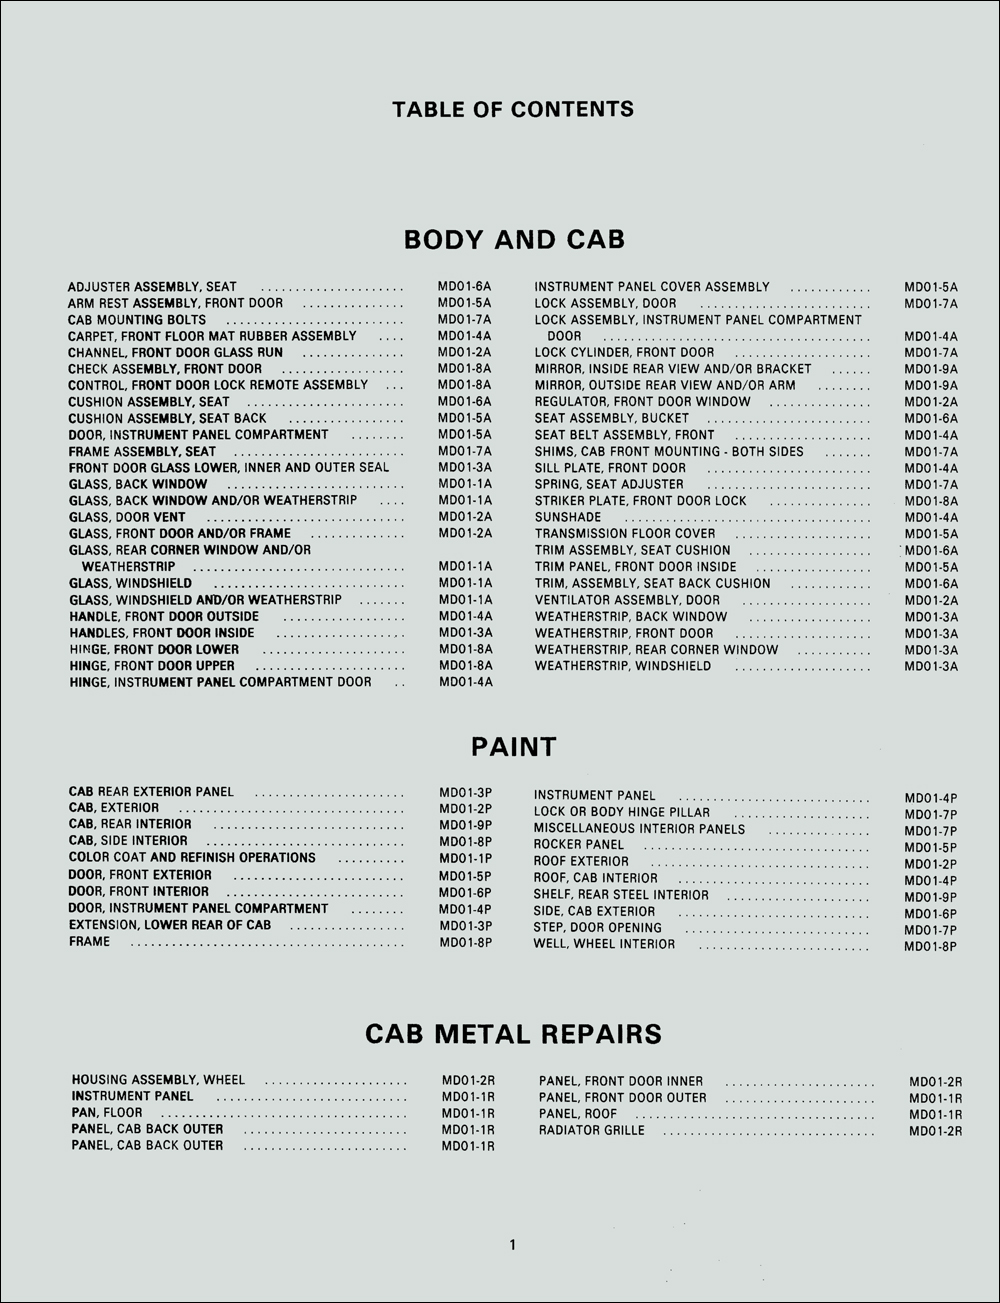 1974 Chevrolet Medium Truck Service Manual Supplement